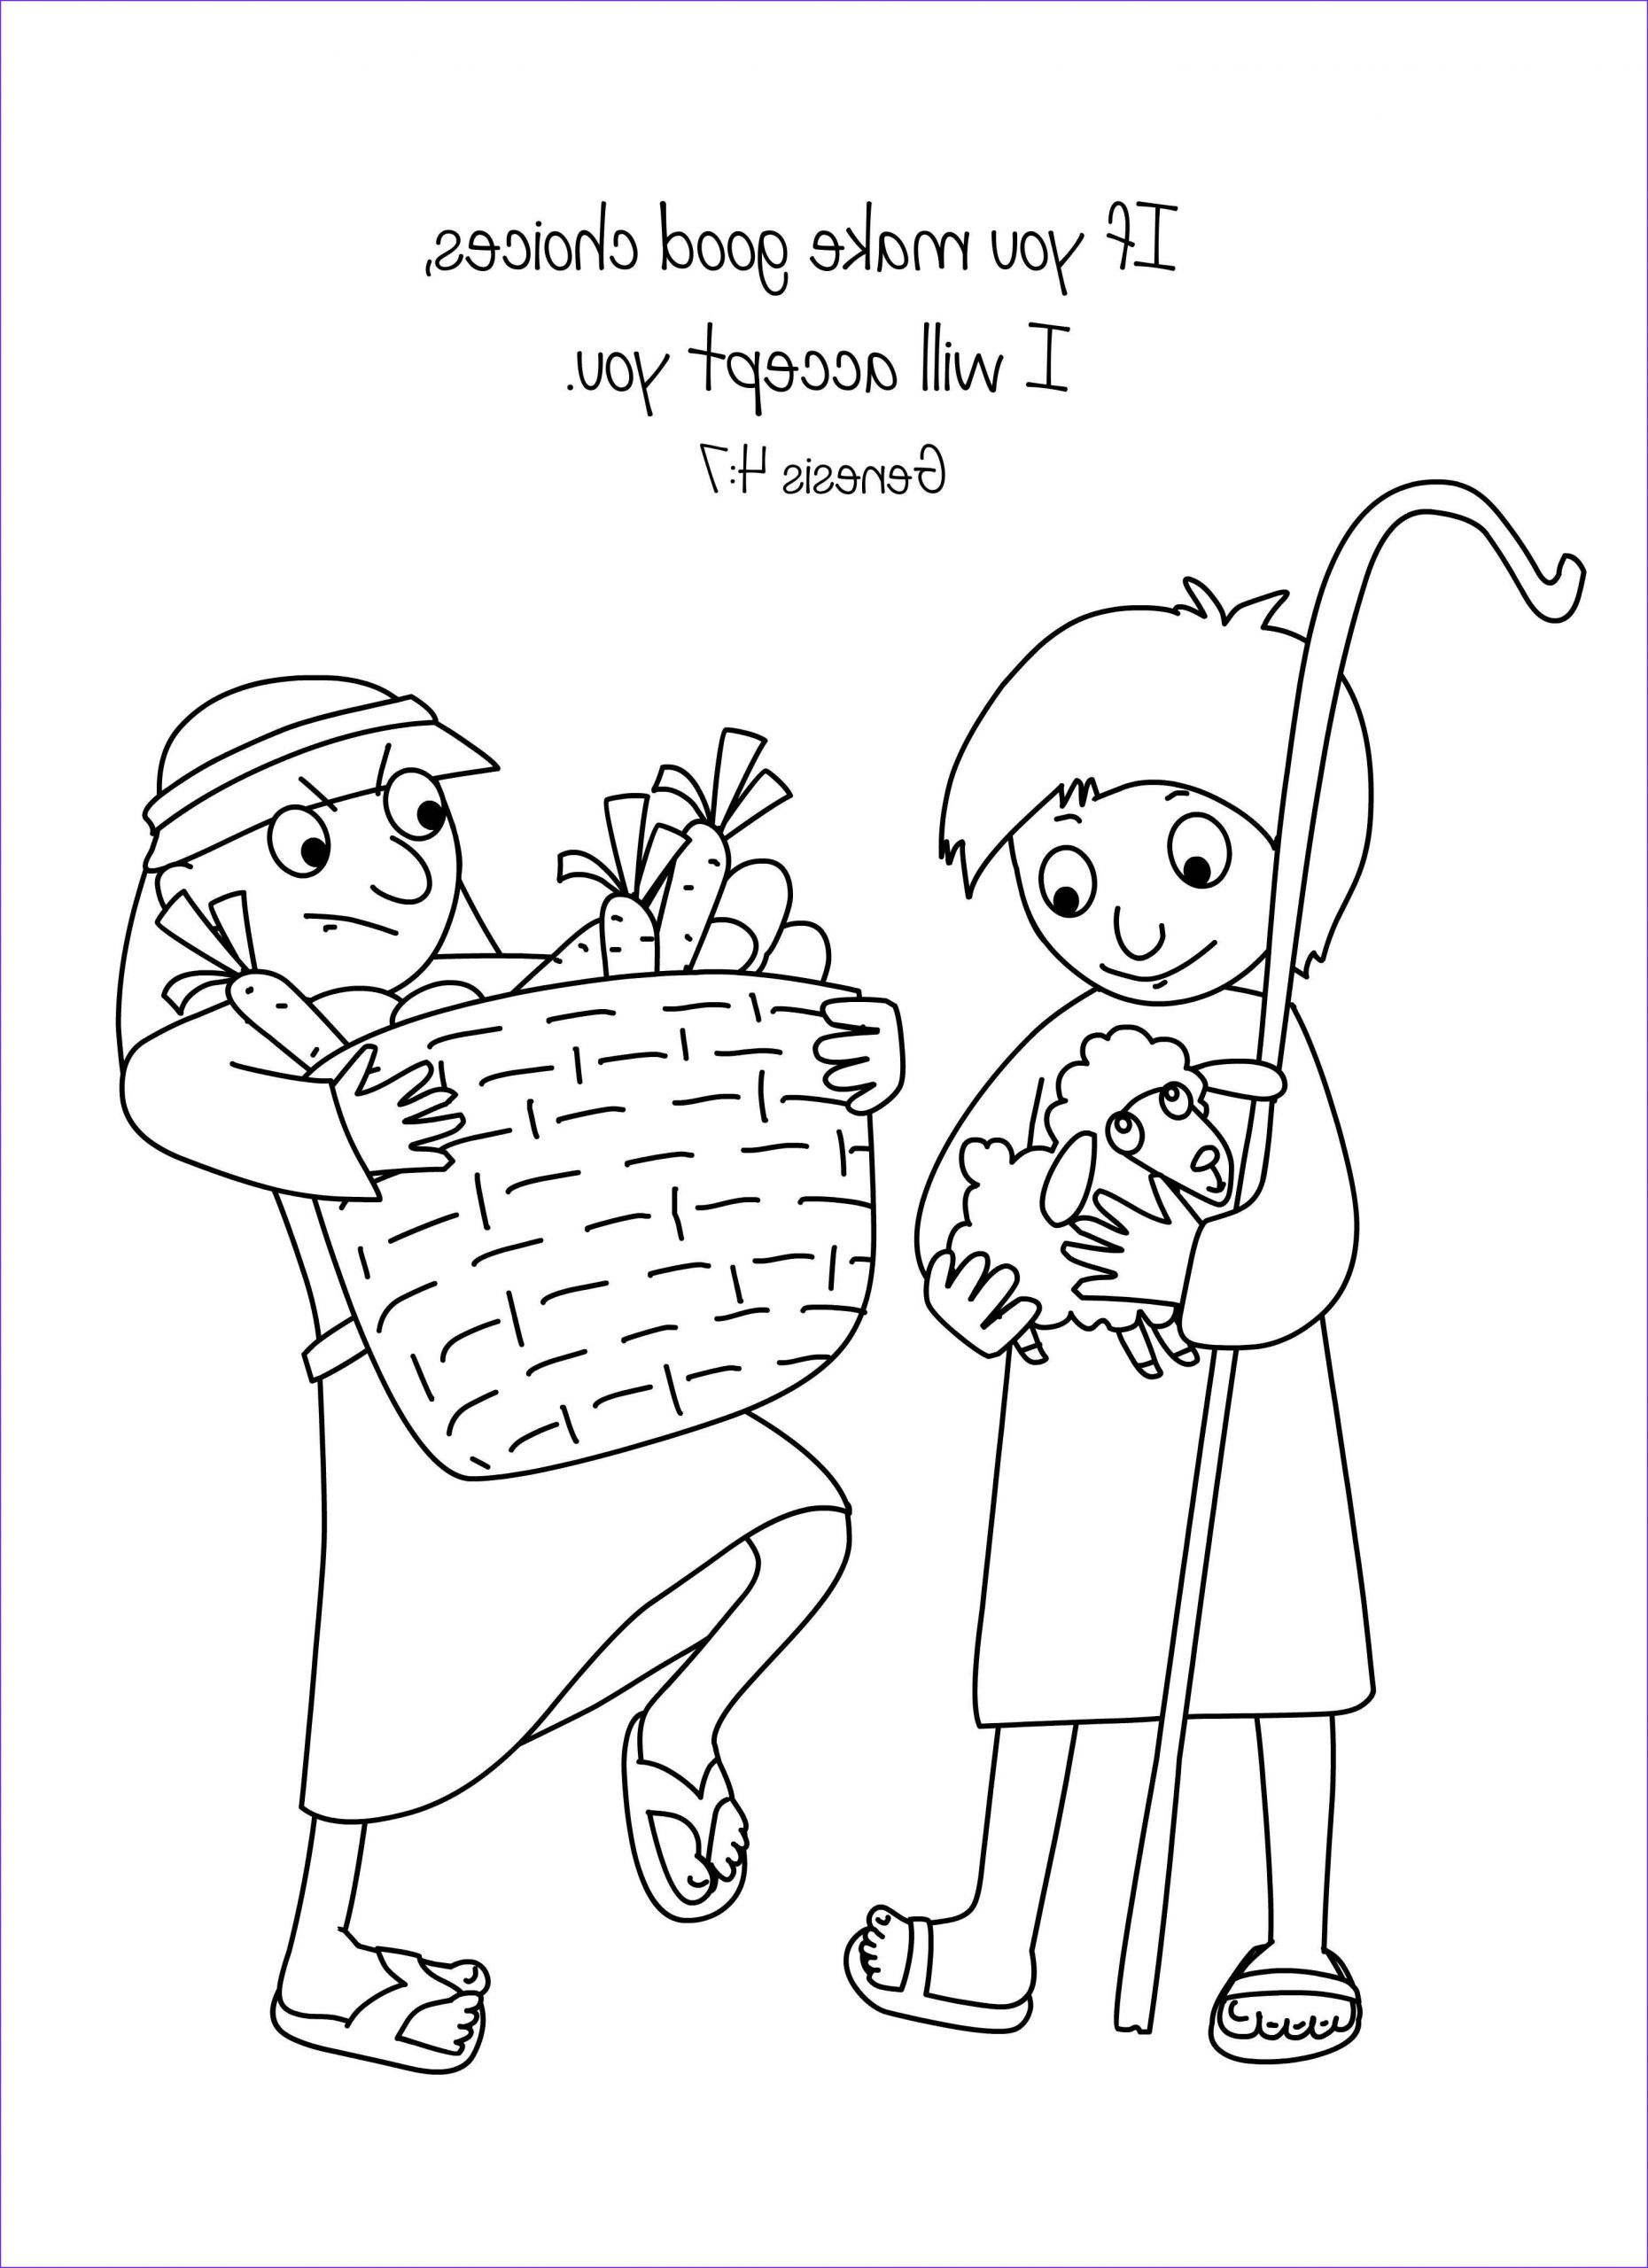 Cain and Abel Coloring Pages Inspirational Images Cain and Abel Bible Coloring Page Free Download